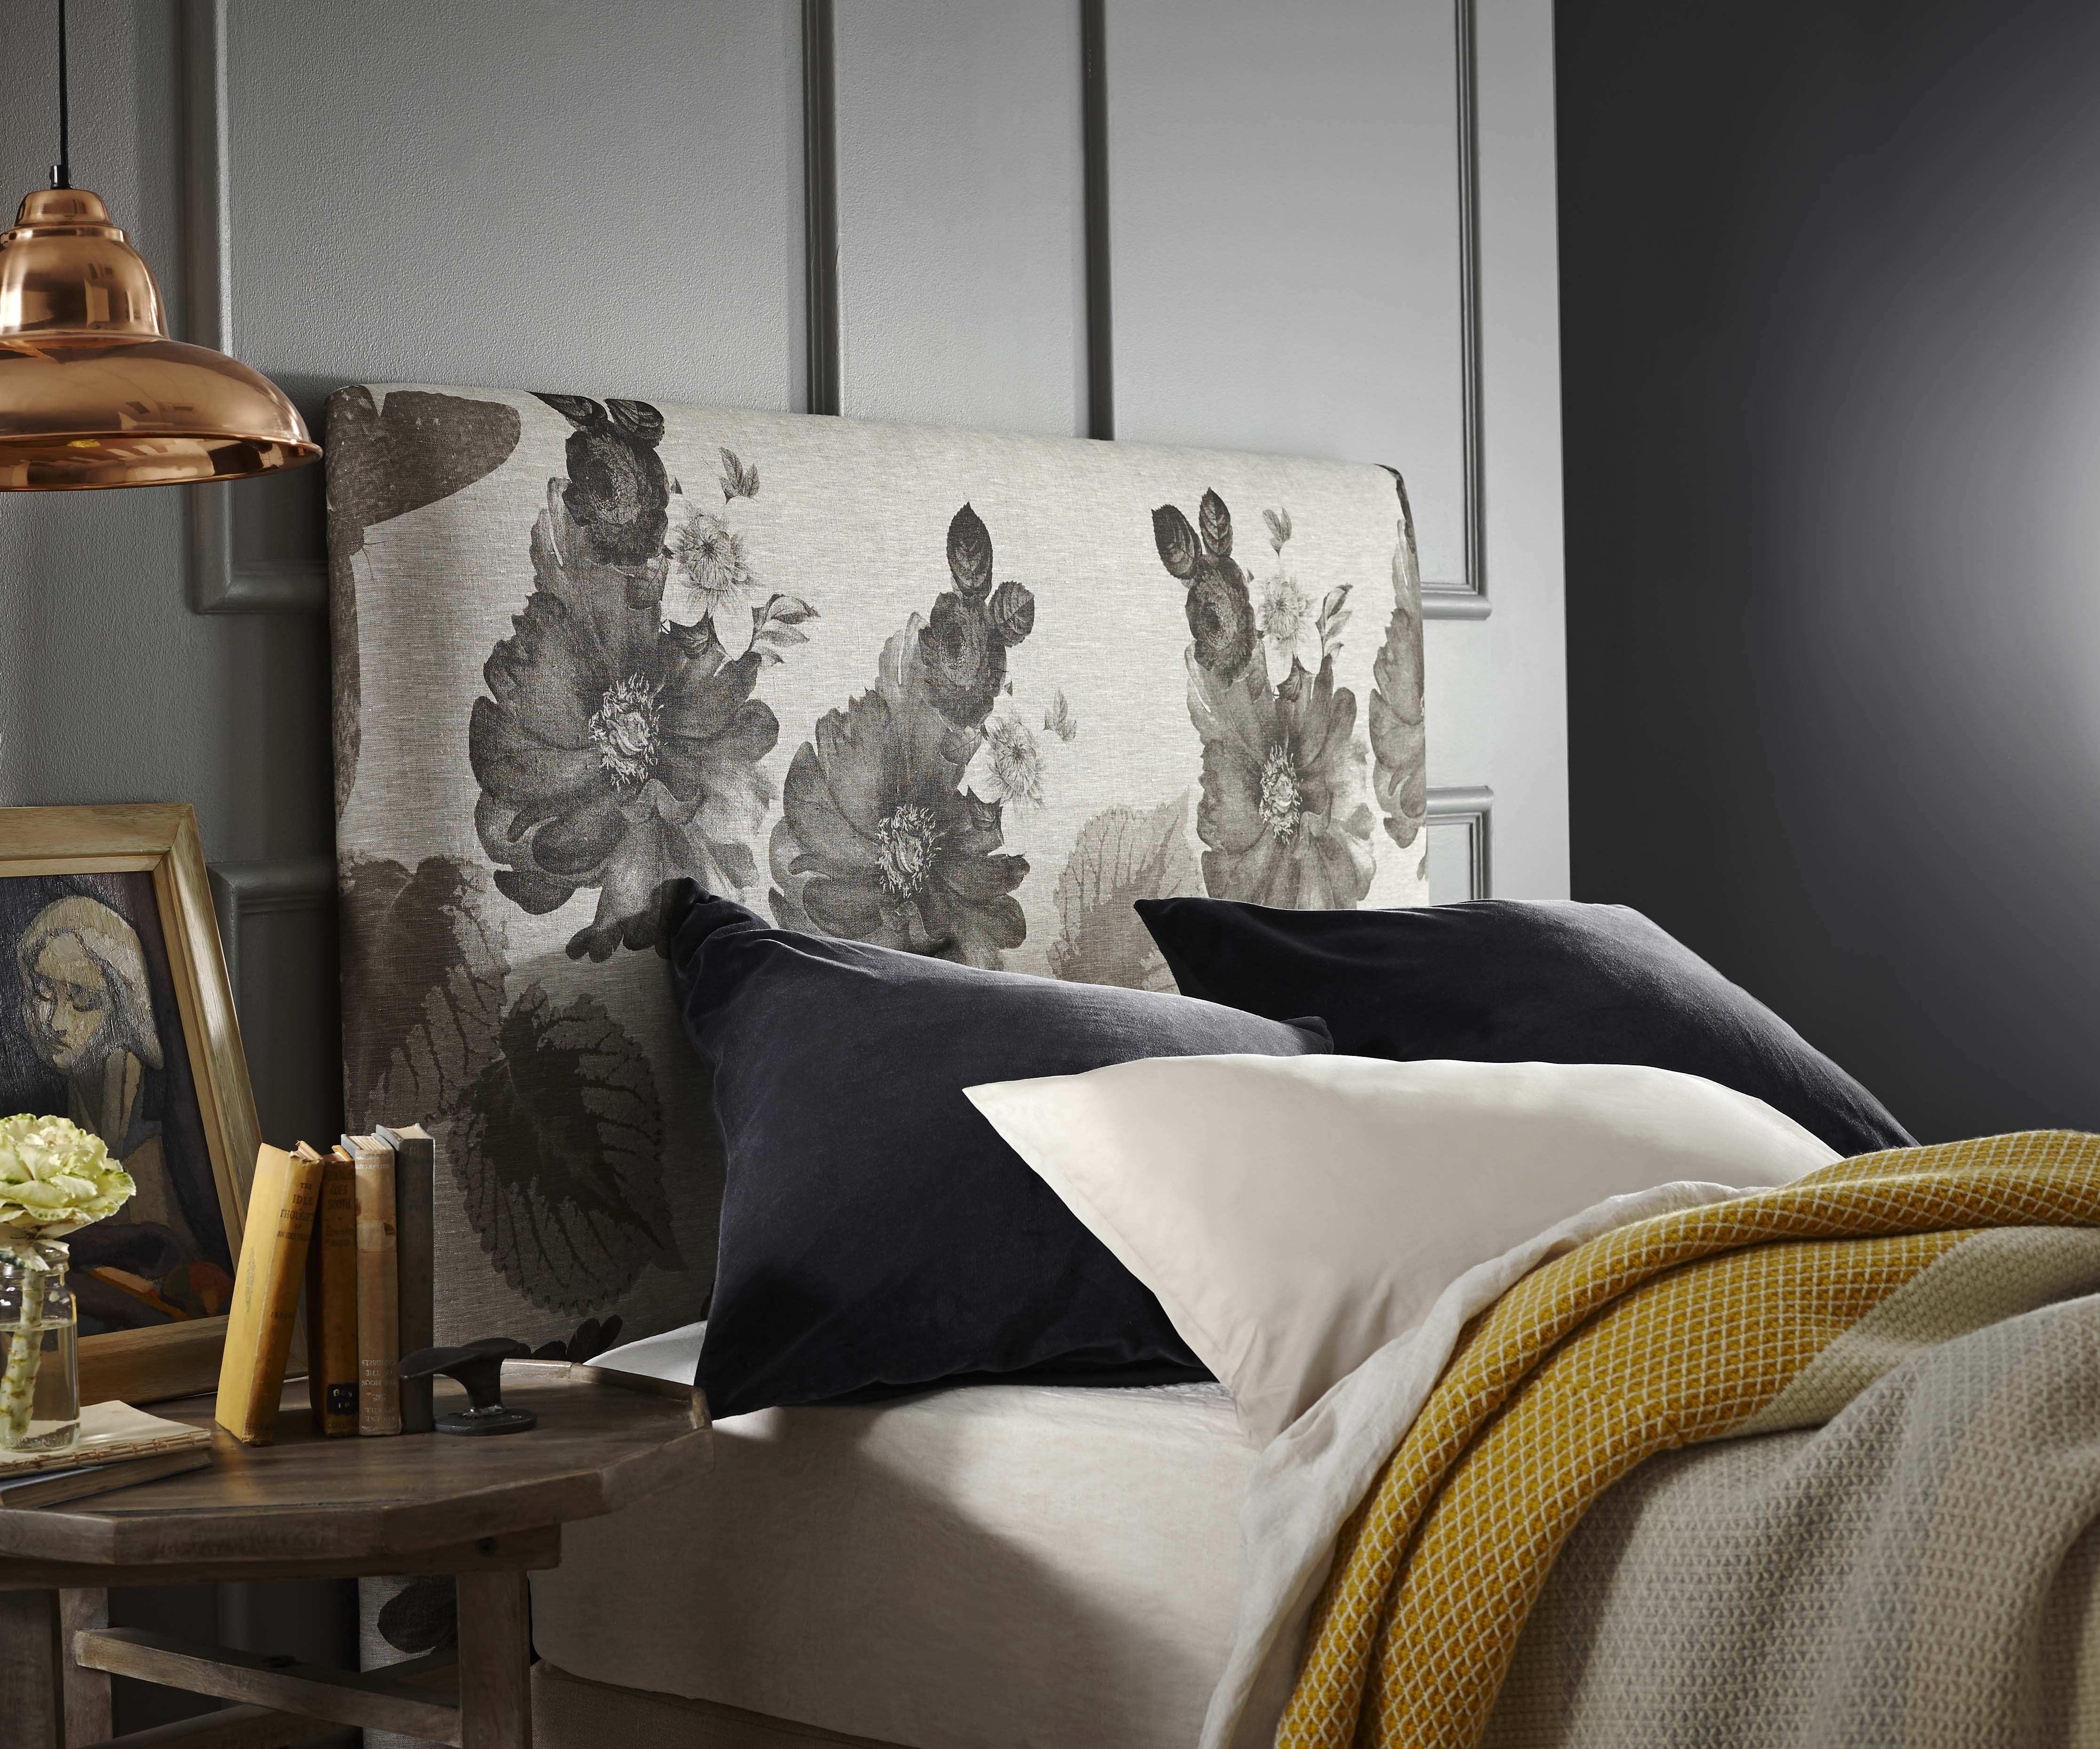 Wall Decoration With Paper Artwork For Bedroom Walls Feng Shui